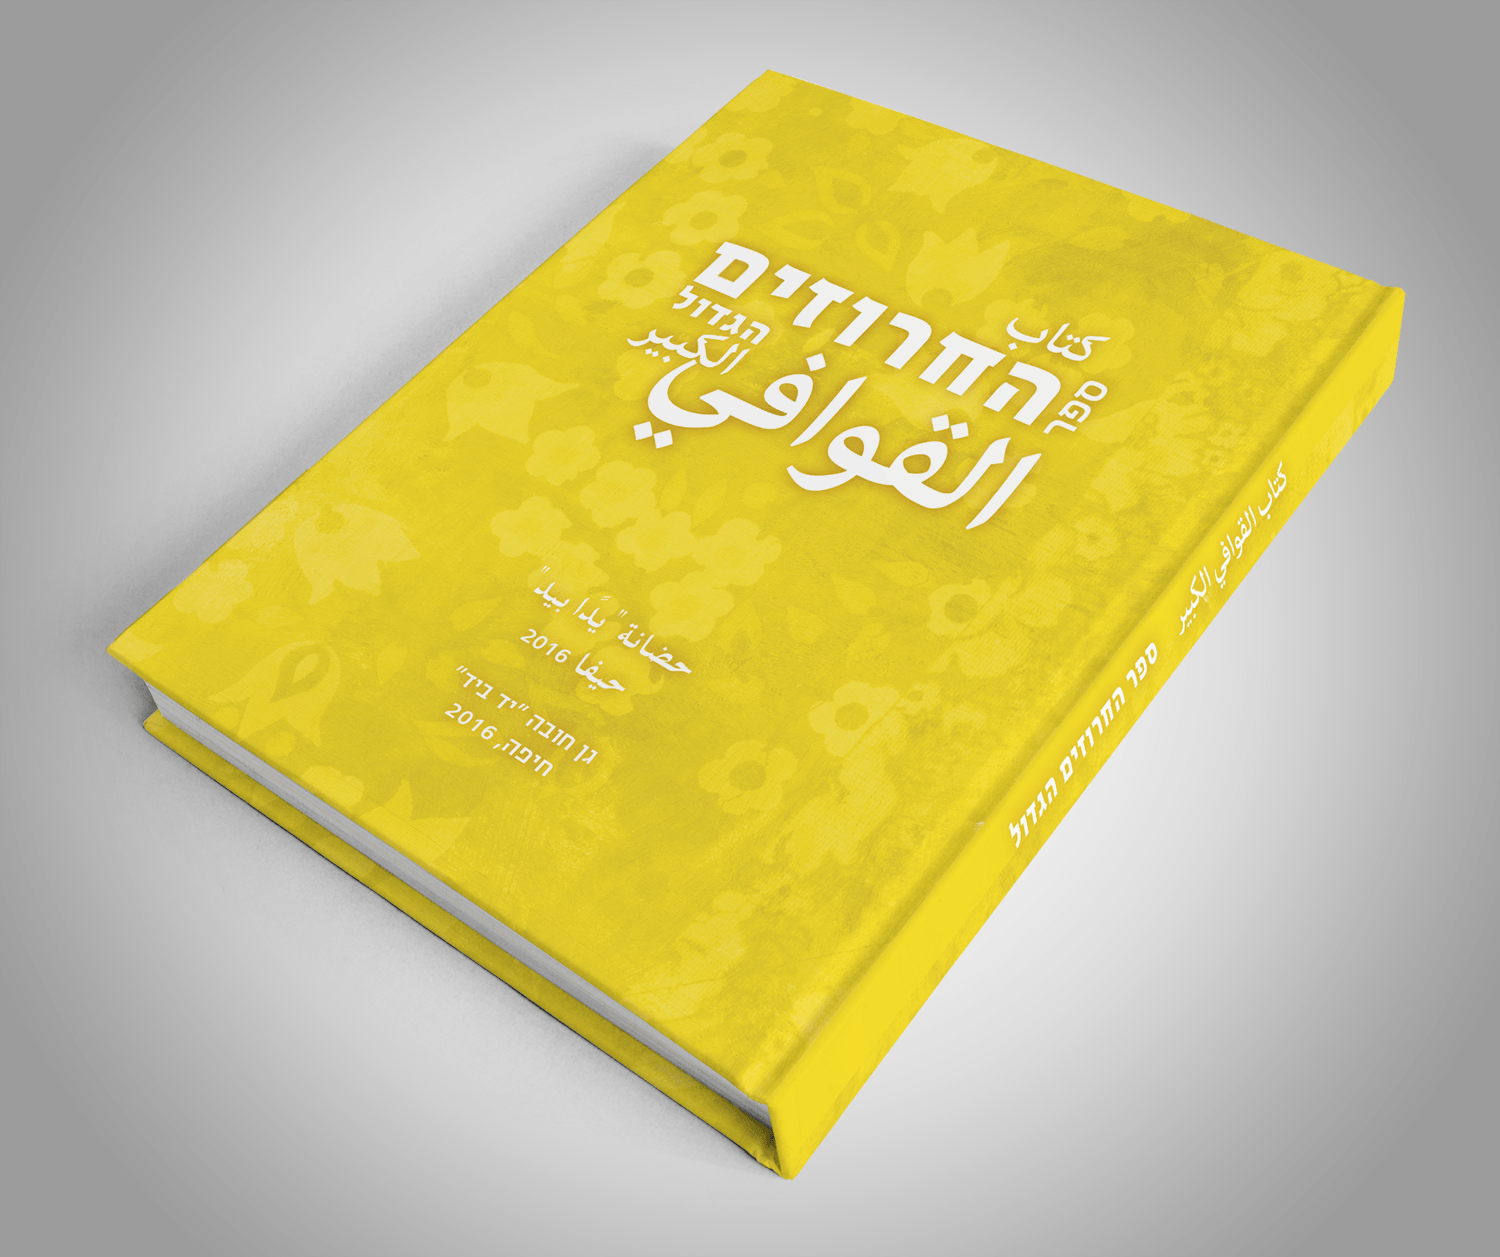 https://bigeyes.co.il/wp-content/uploads/2019/07/shtuzim-book-cover.png